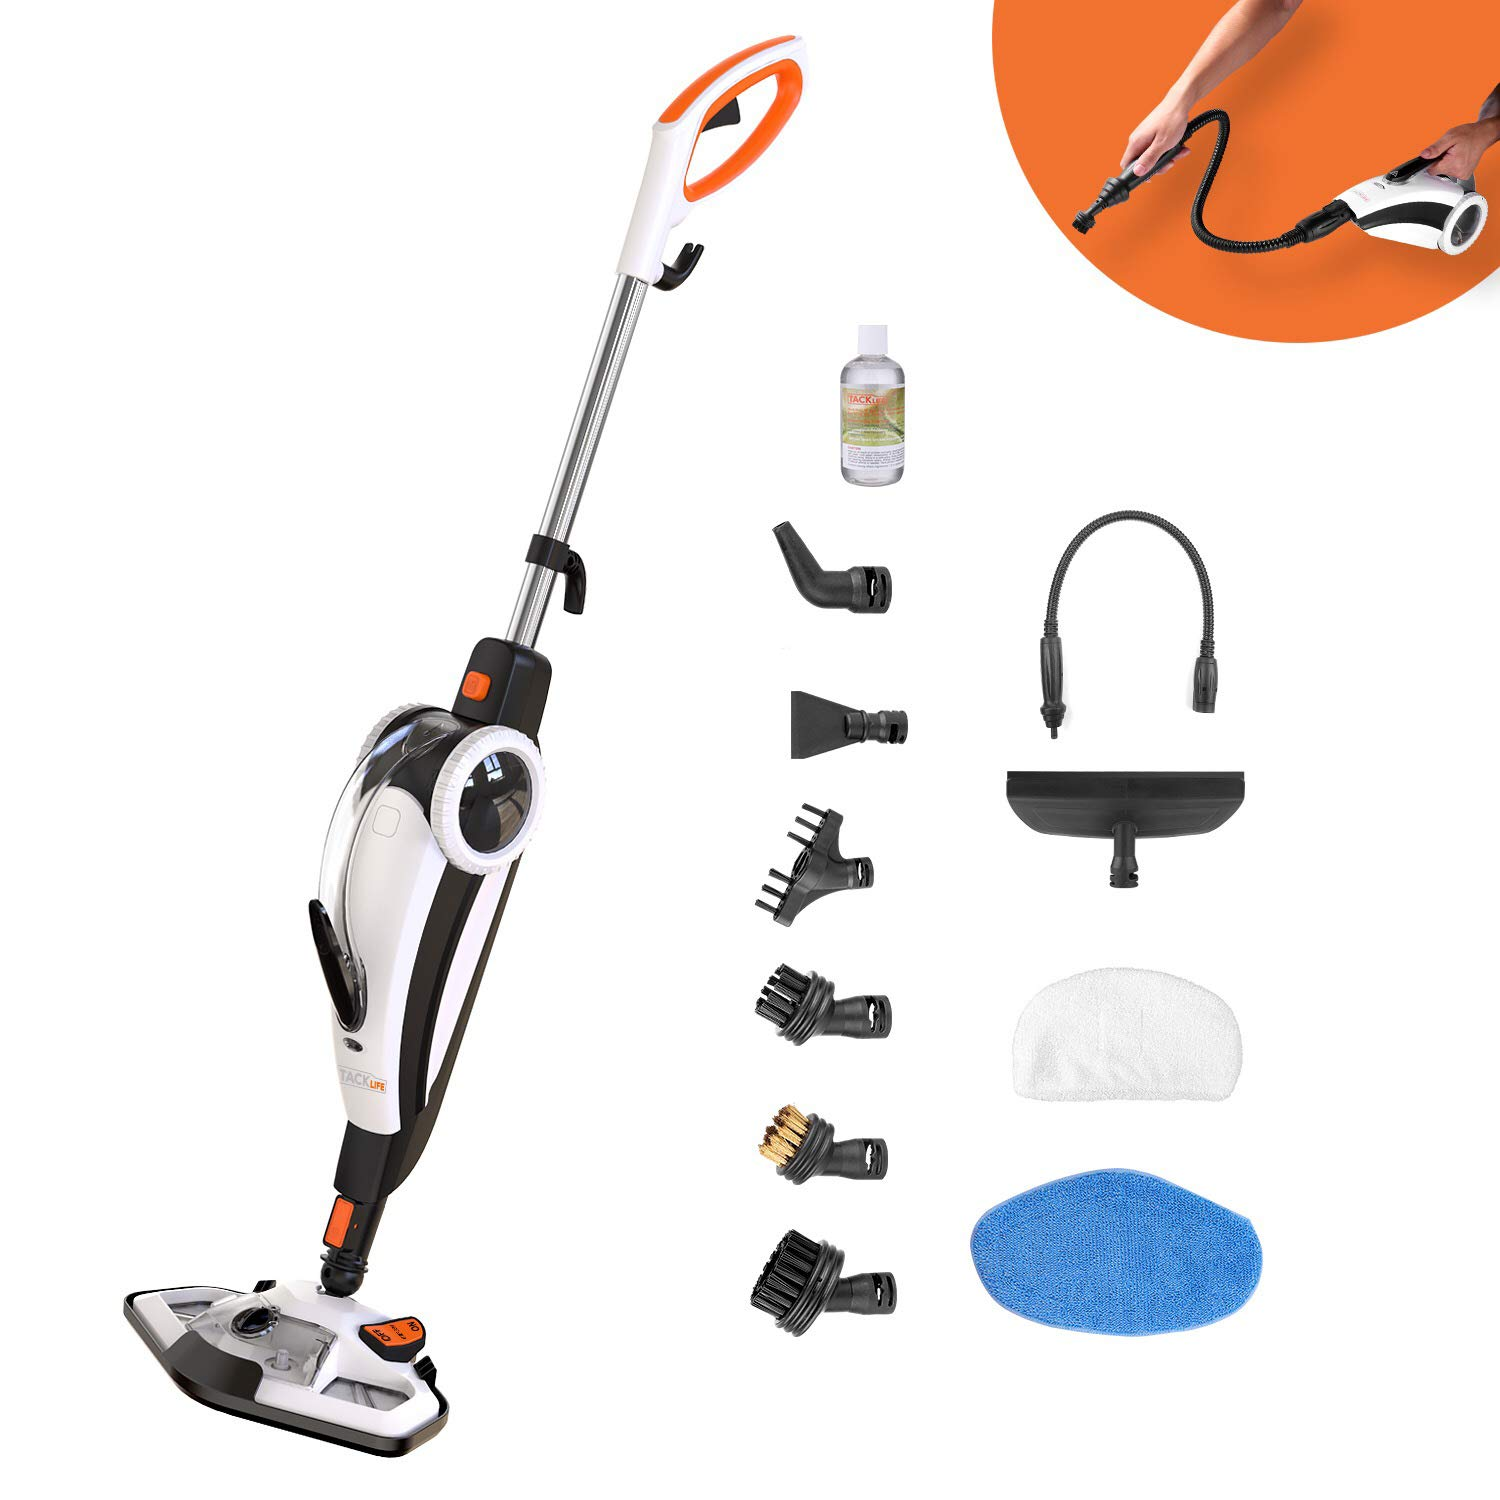 TACKLIFE Steam Mop, Steam Cleaner Multifunction Floor Steamer and Hand-held Steam Floor Mop 2 in 1, 1400W Portable Electric Scrubber Heating in 5s, with 11 Accessories